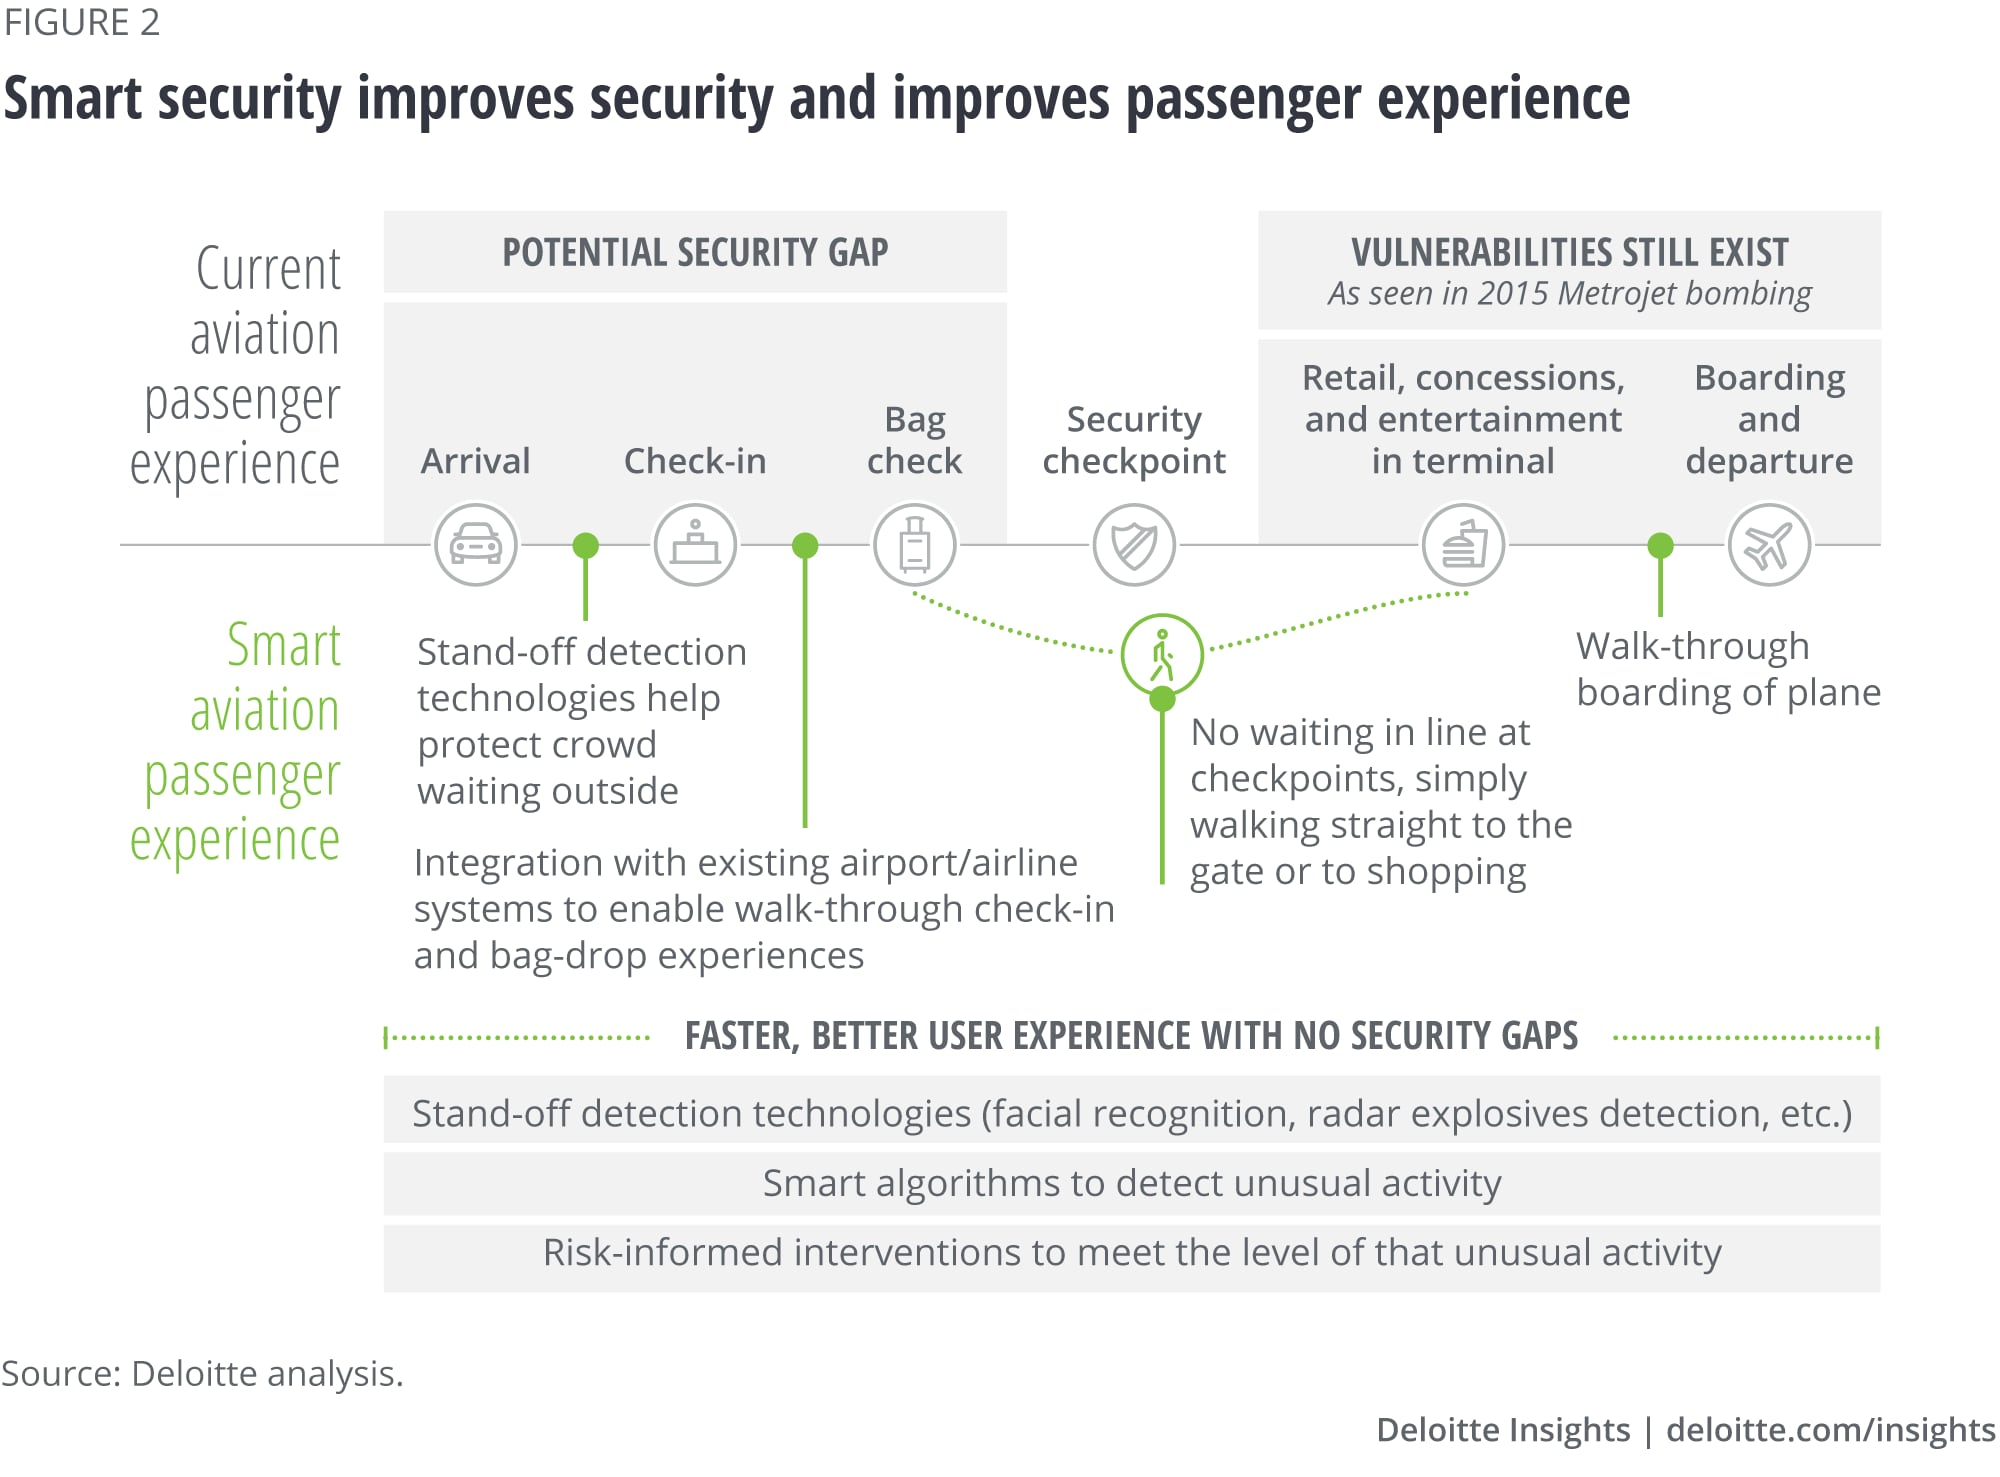 Smart security improves security and improves passenger experience